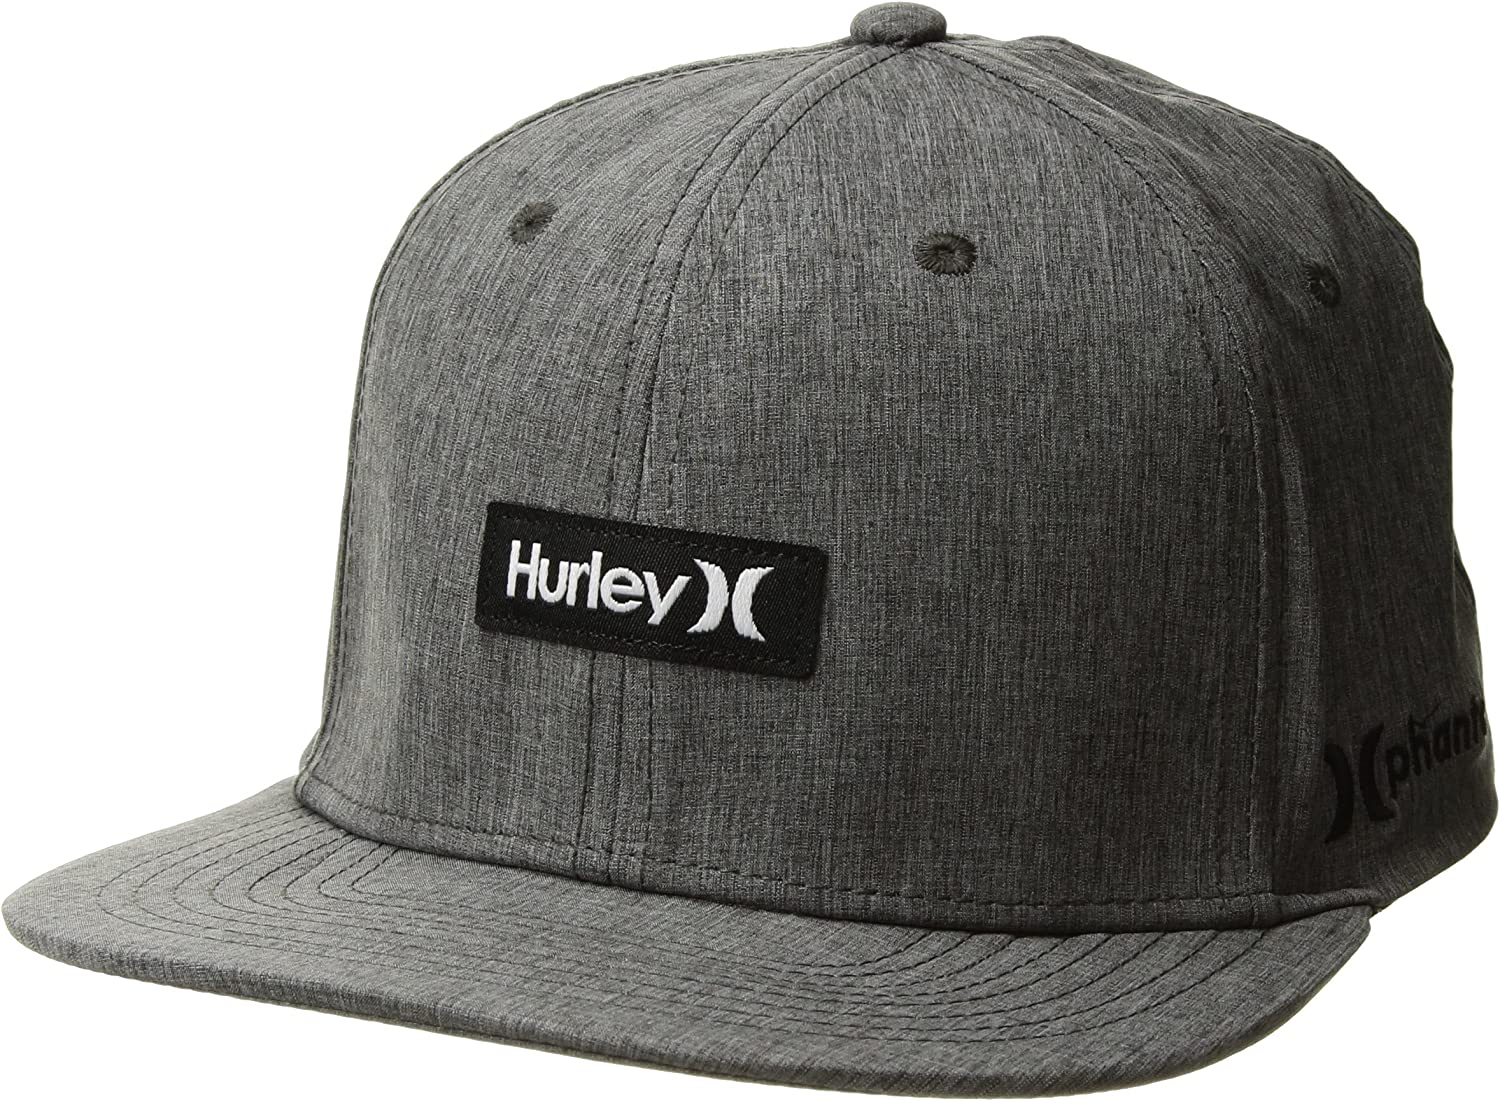 Hurley New Mens Phantom One /& Only Hat Stretch Spandex Blue